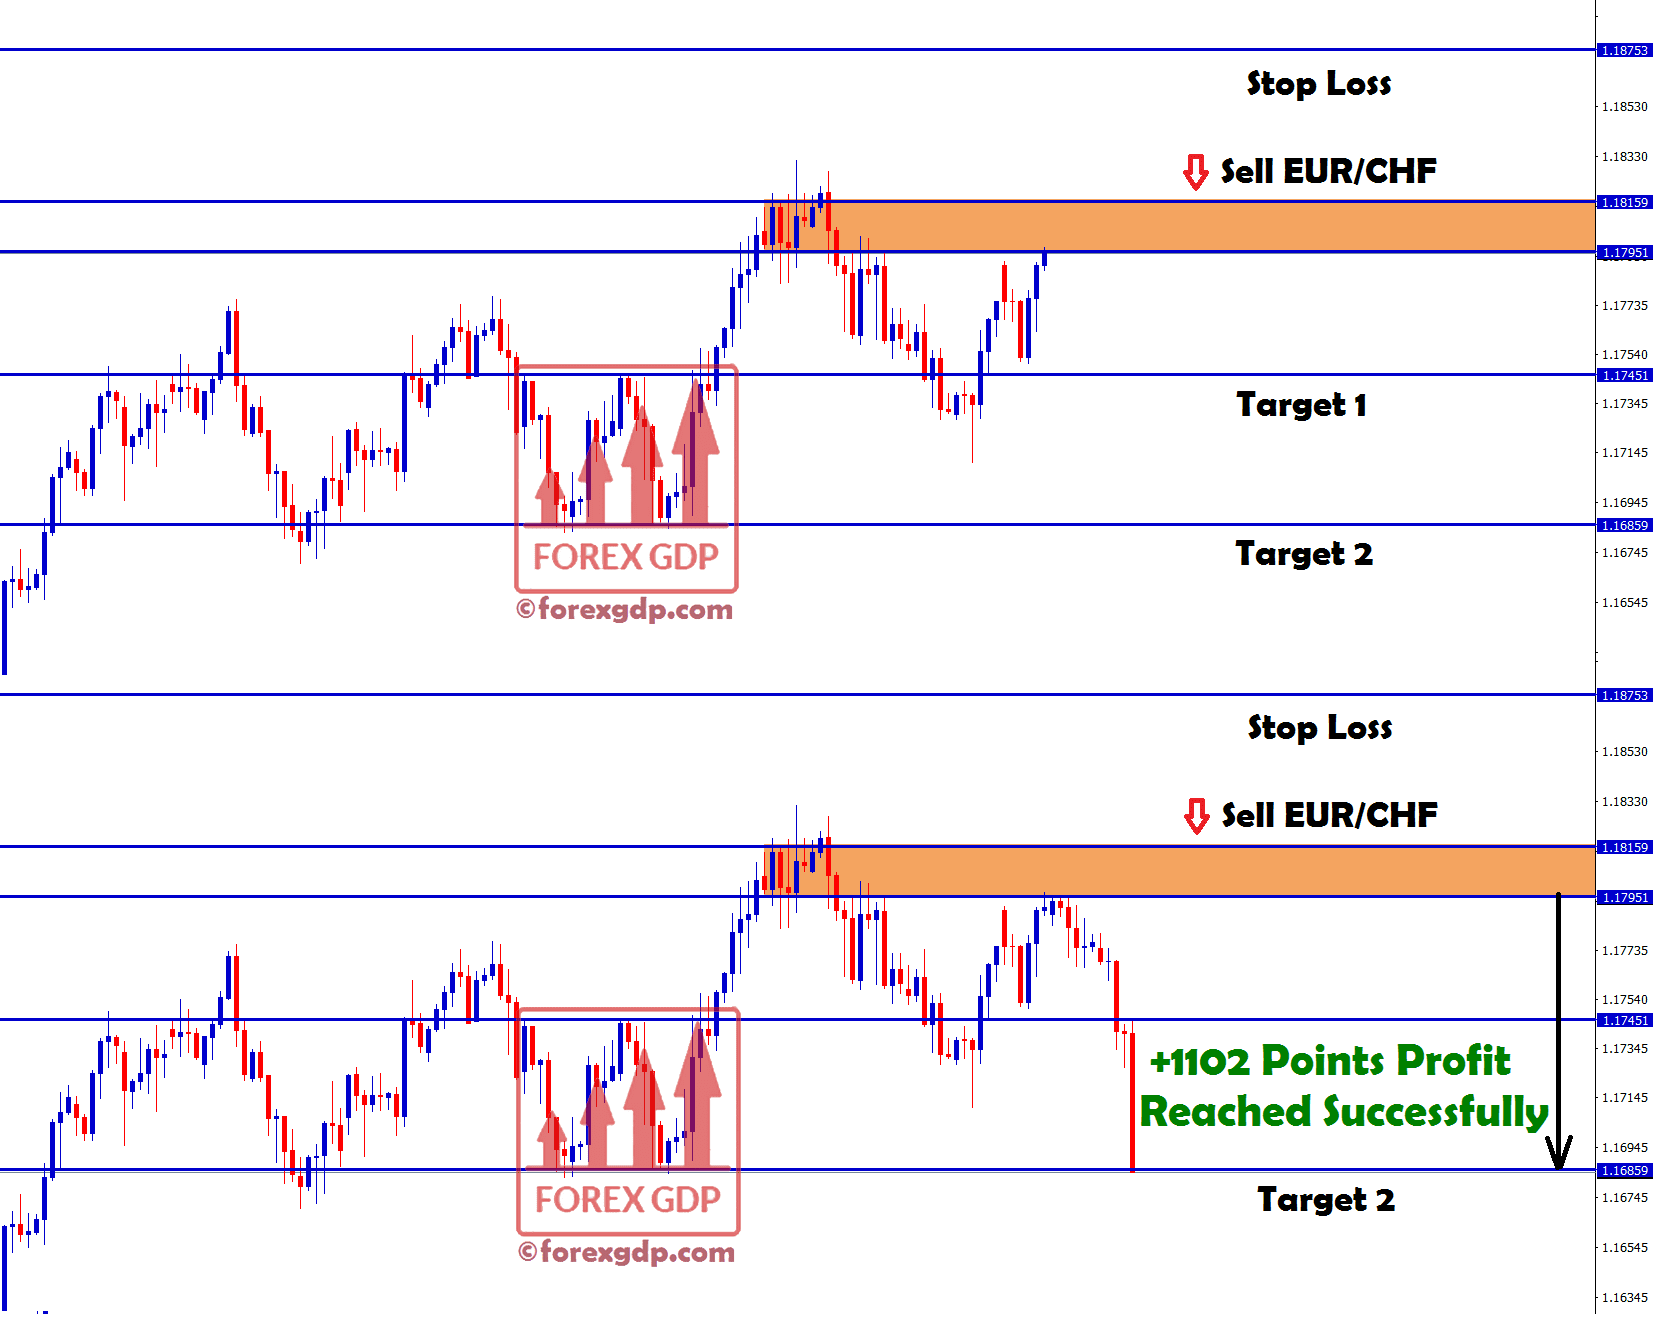 +1102 points profit made in eur chf sell signal